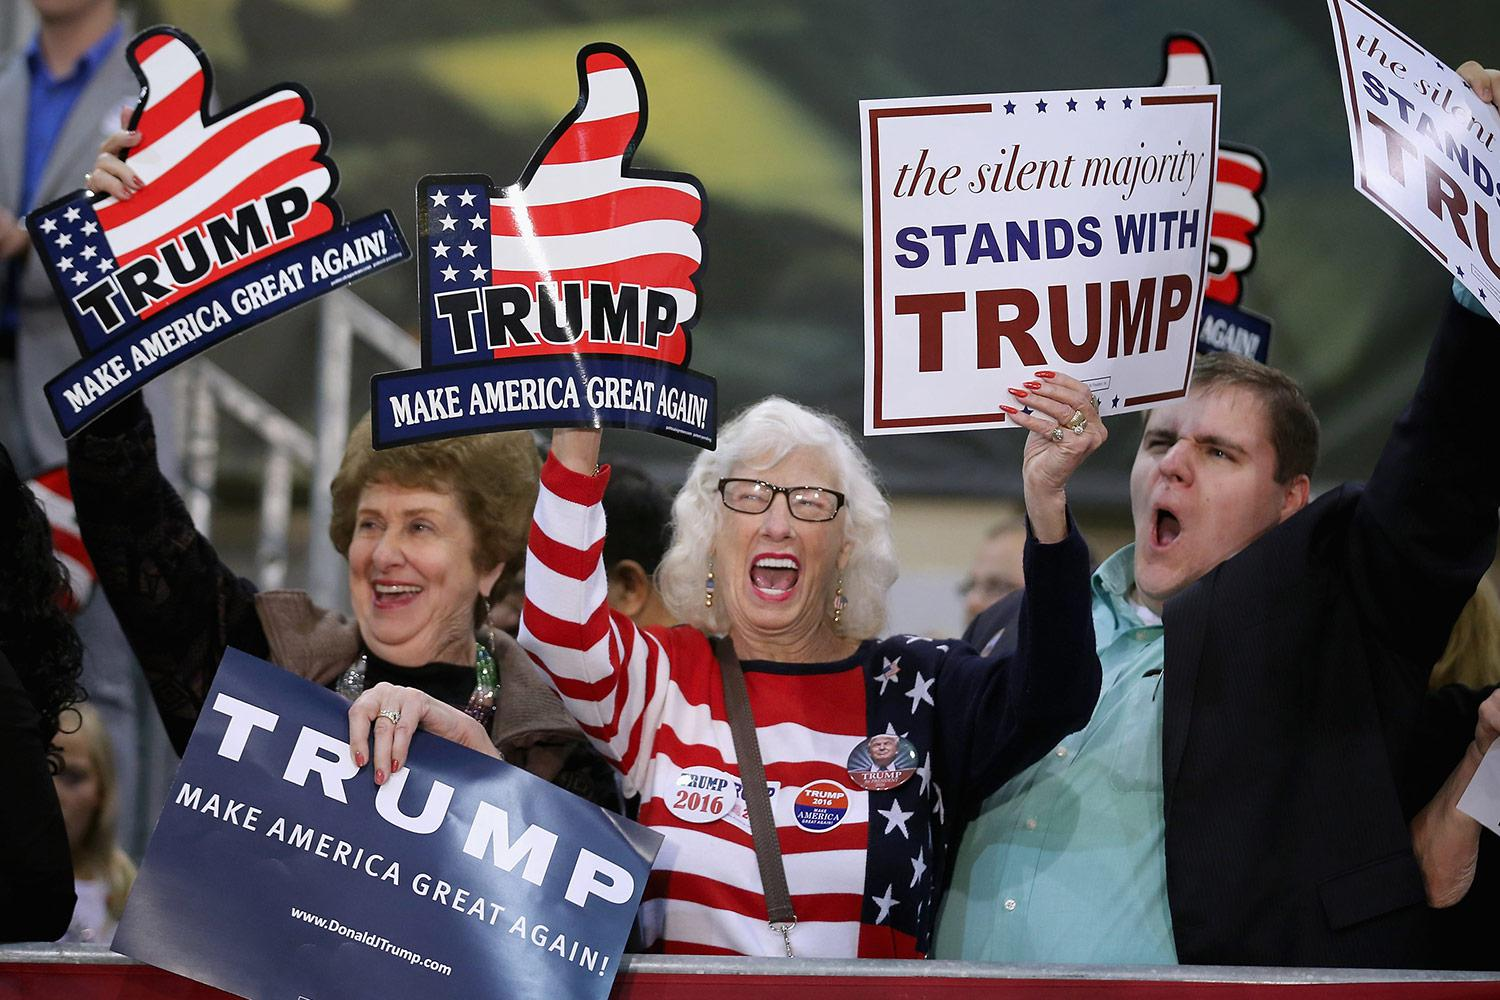 Trump supporters cheer